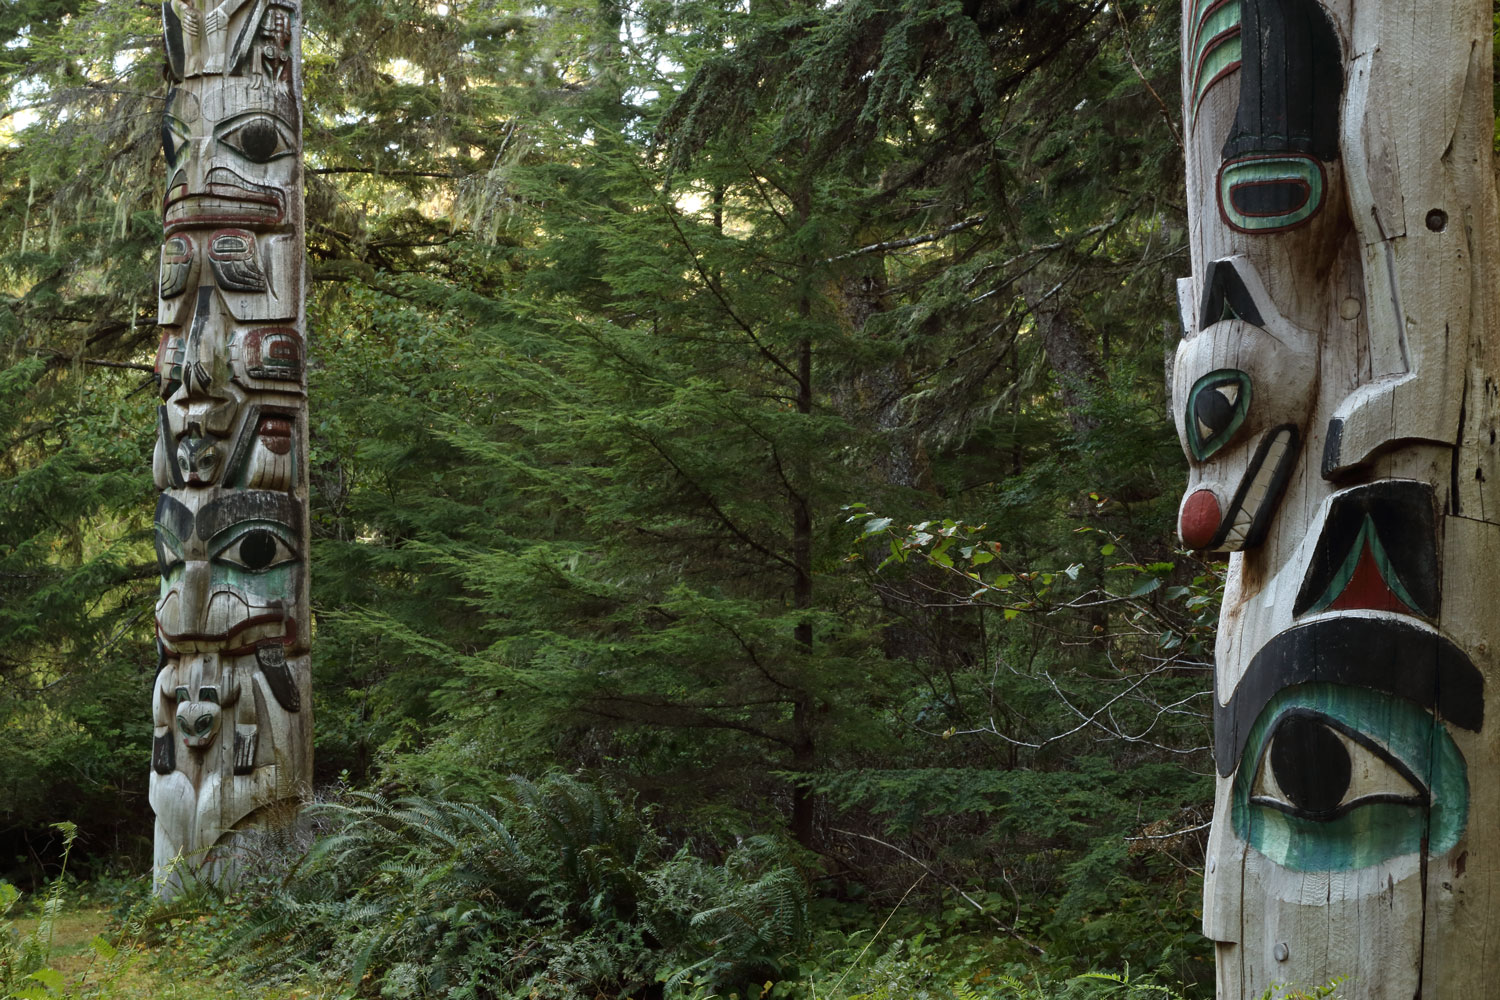 Totem poles at the Kasaan Totem Park next to the Whale House.